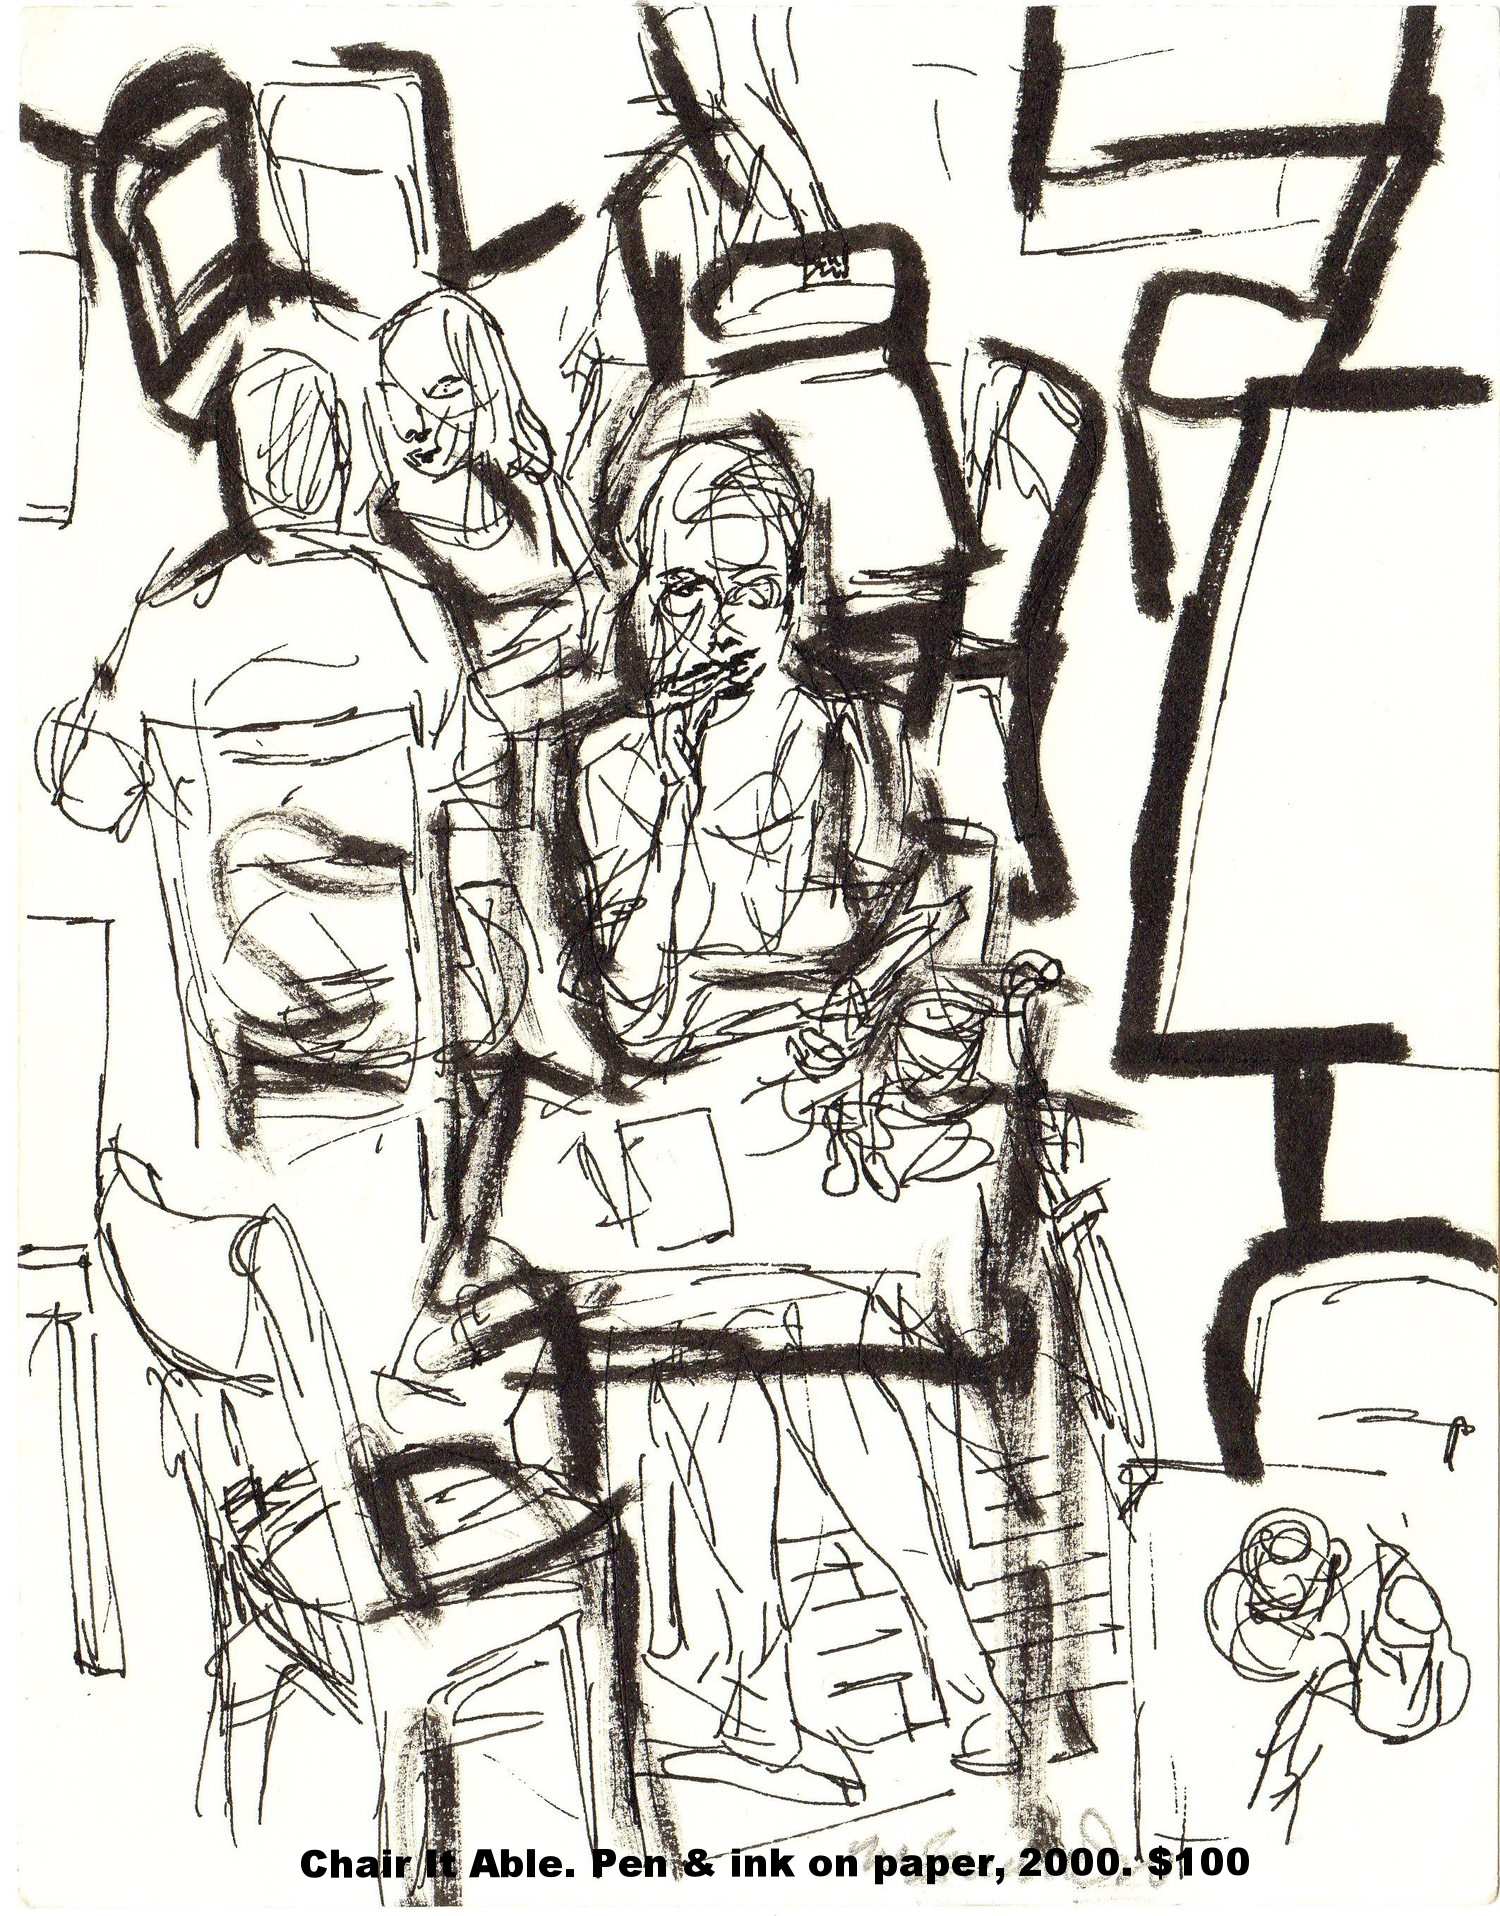 Fred Wise Chair It Able Pen and ink on paper 7 in x 9 in 2000.jpg